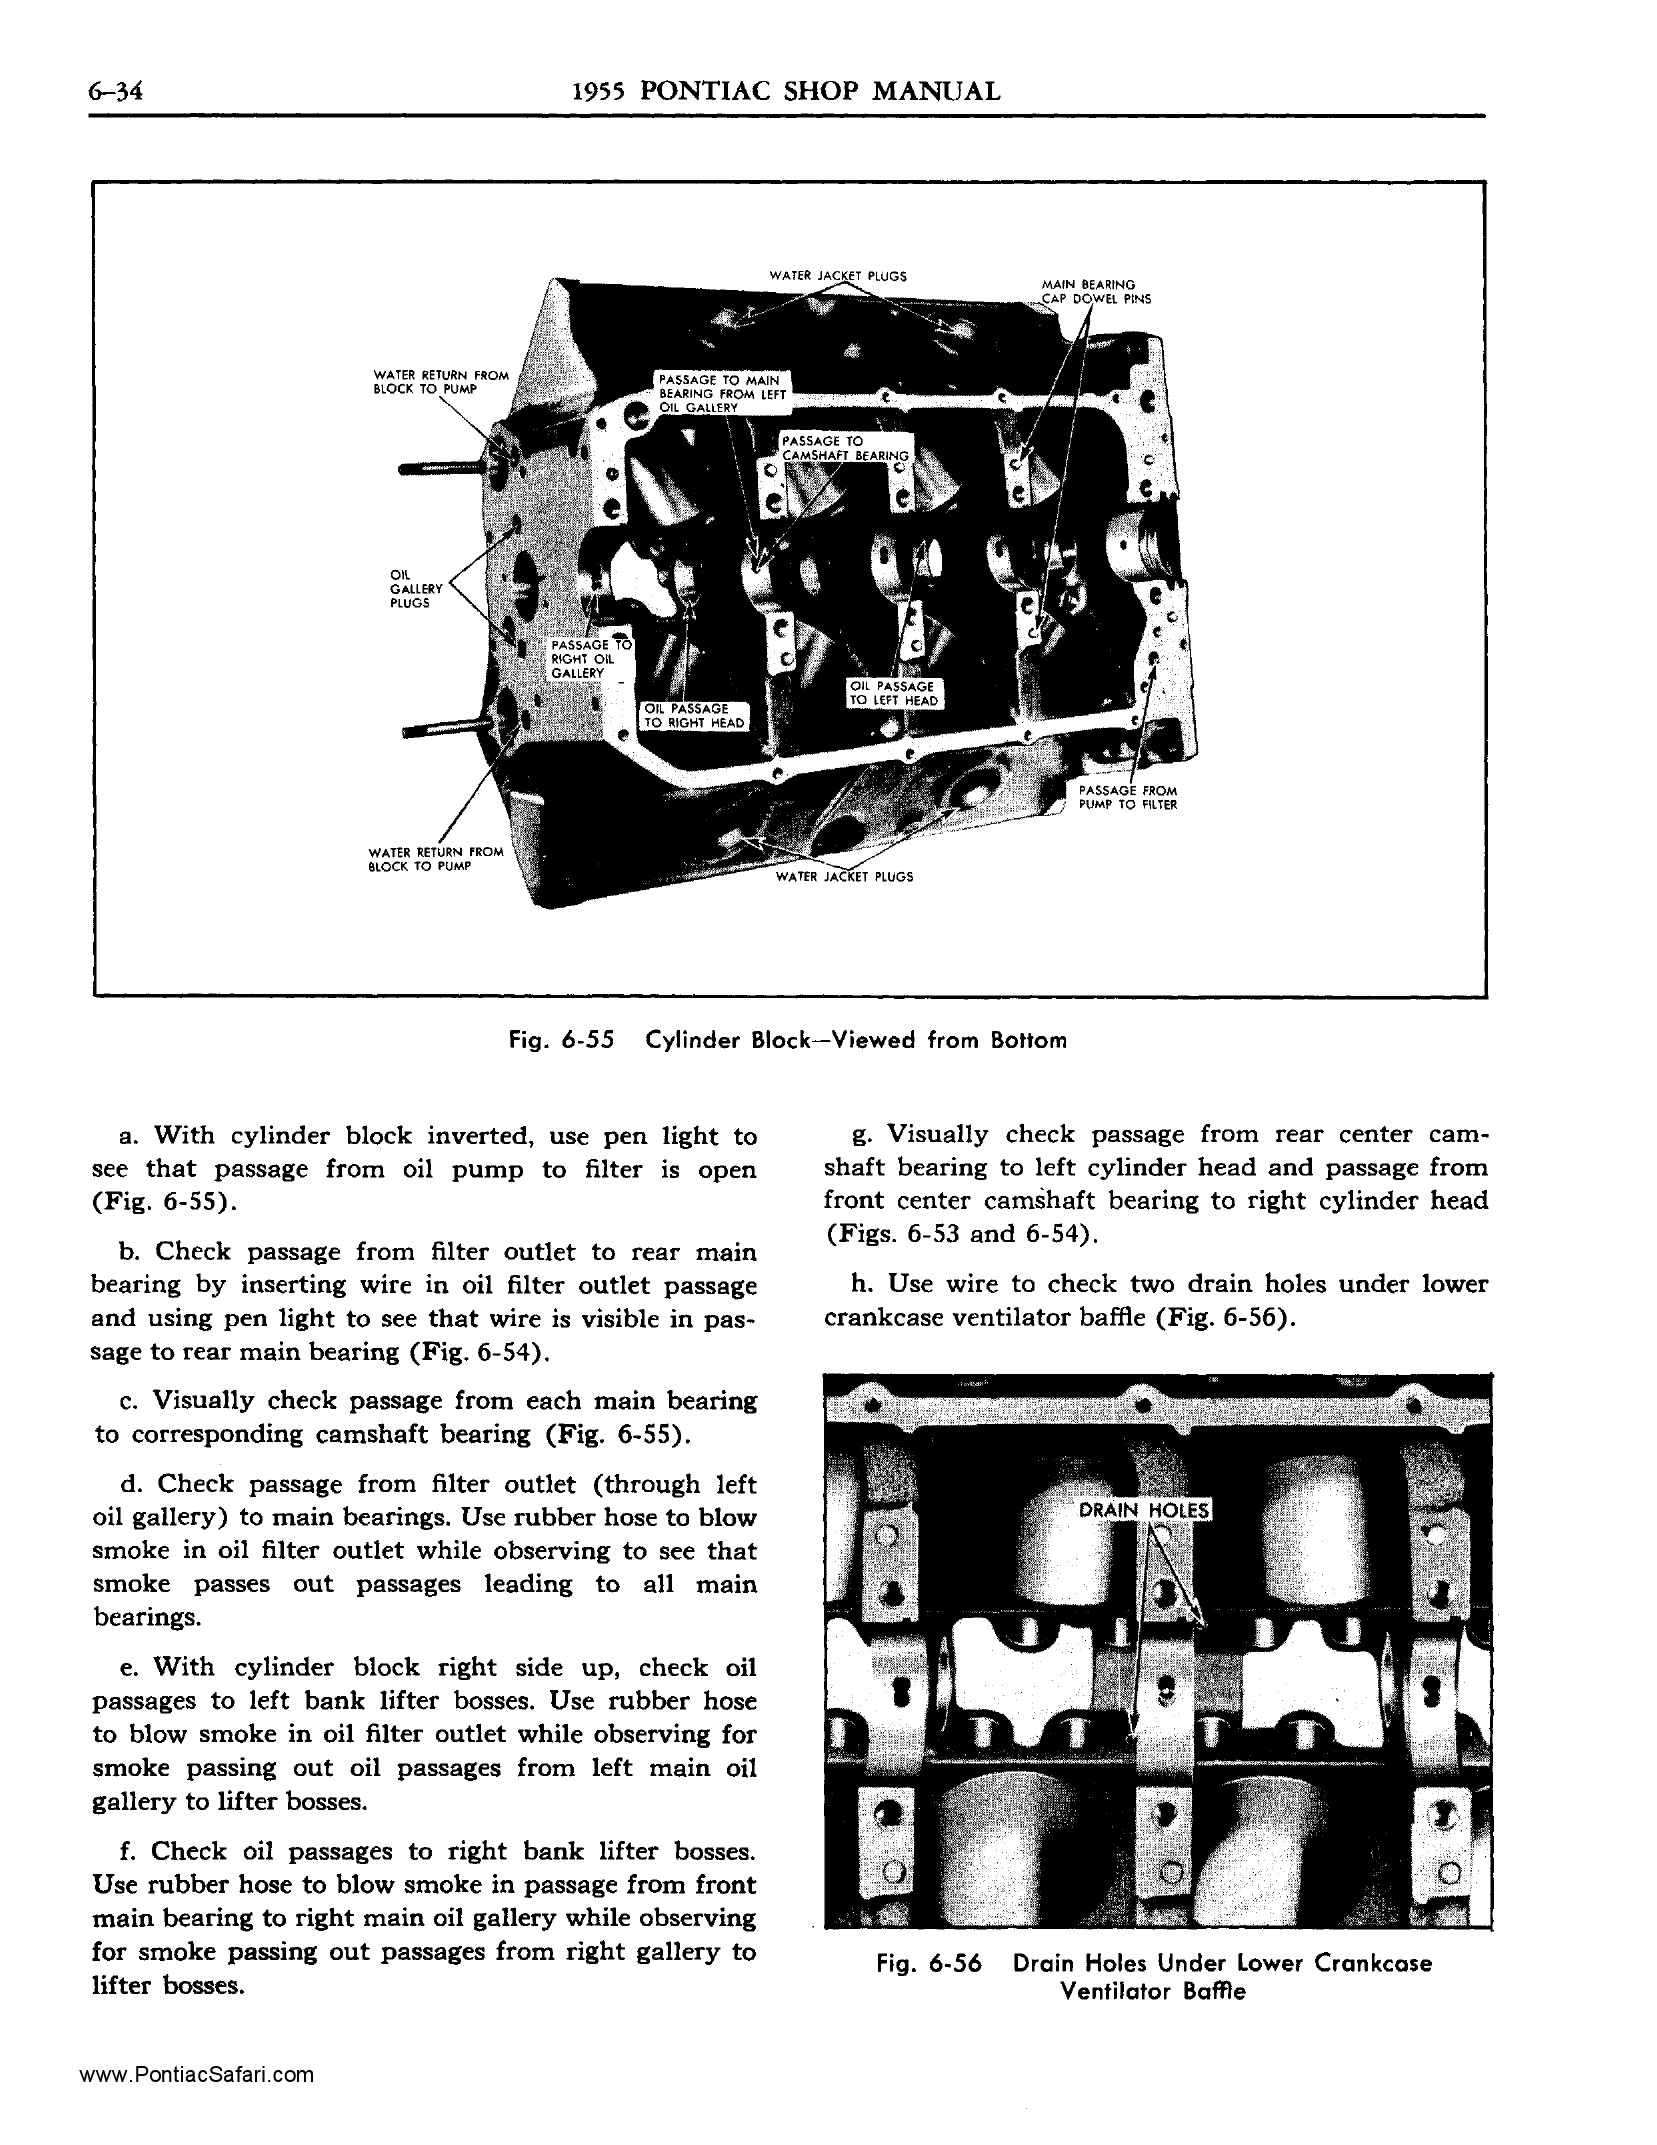 1955 Pontiac Shop Manual- Engine Mechanical Page 35 of 53